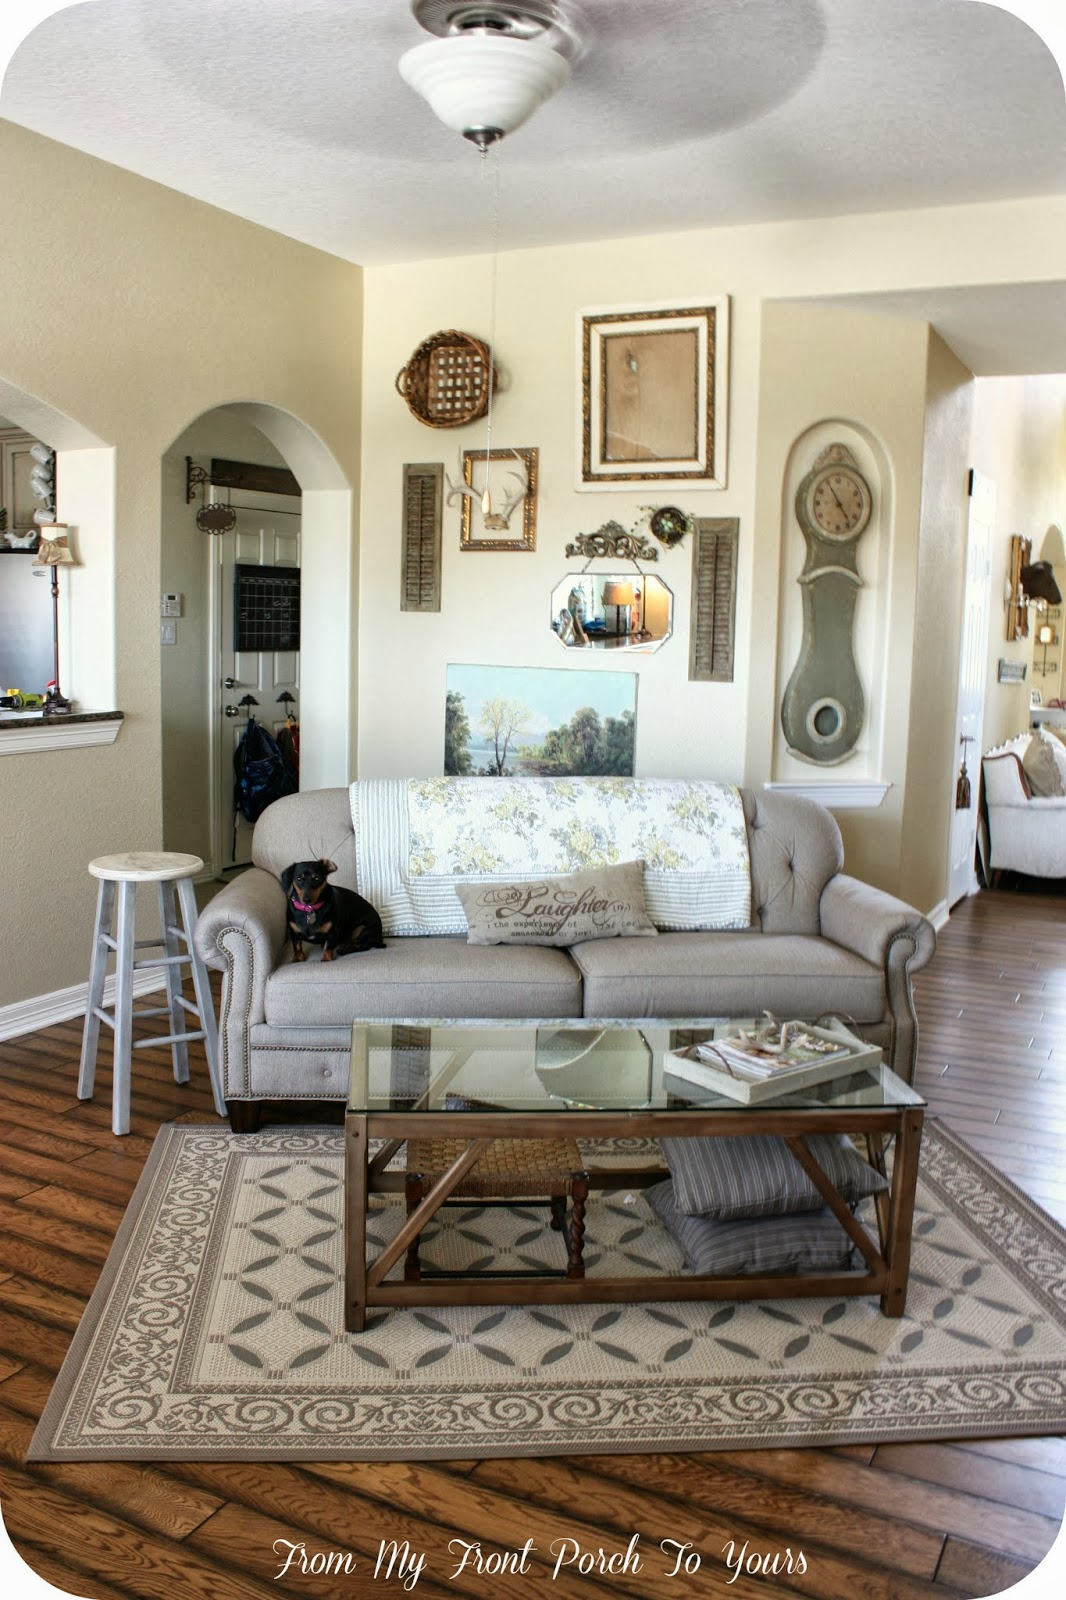 from my front porch to yours: french farmhouse living room reveal